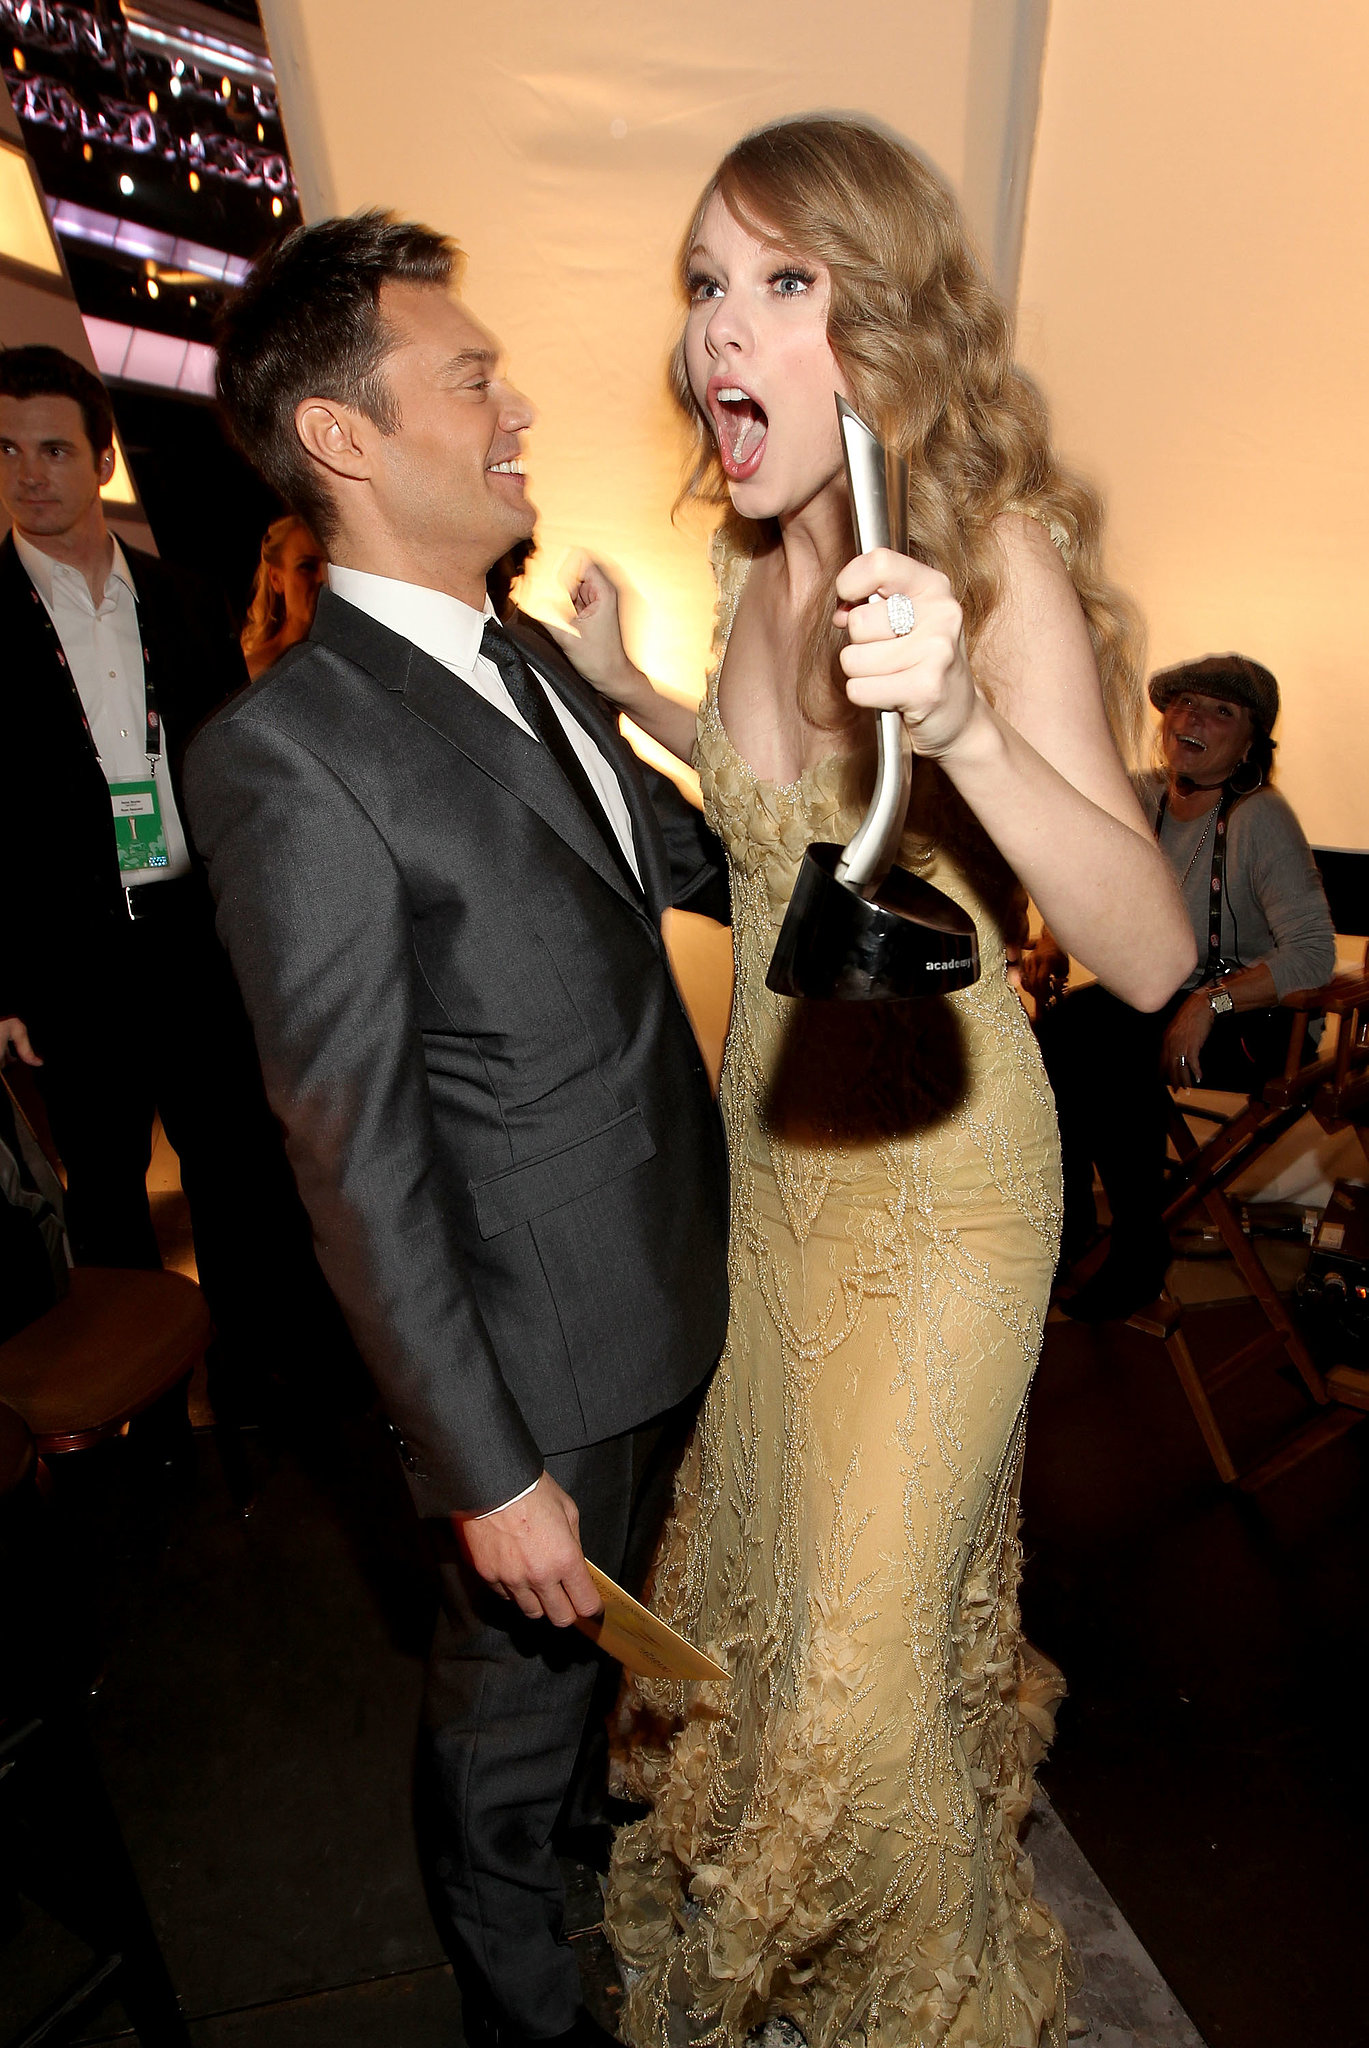 Taylor Swift celebrated her award win with Ryan Seacrest at the ACMs in April 2011.